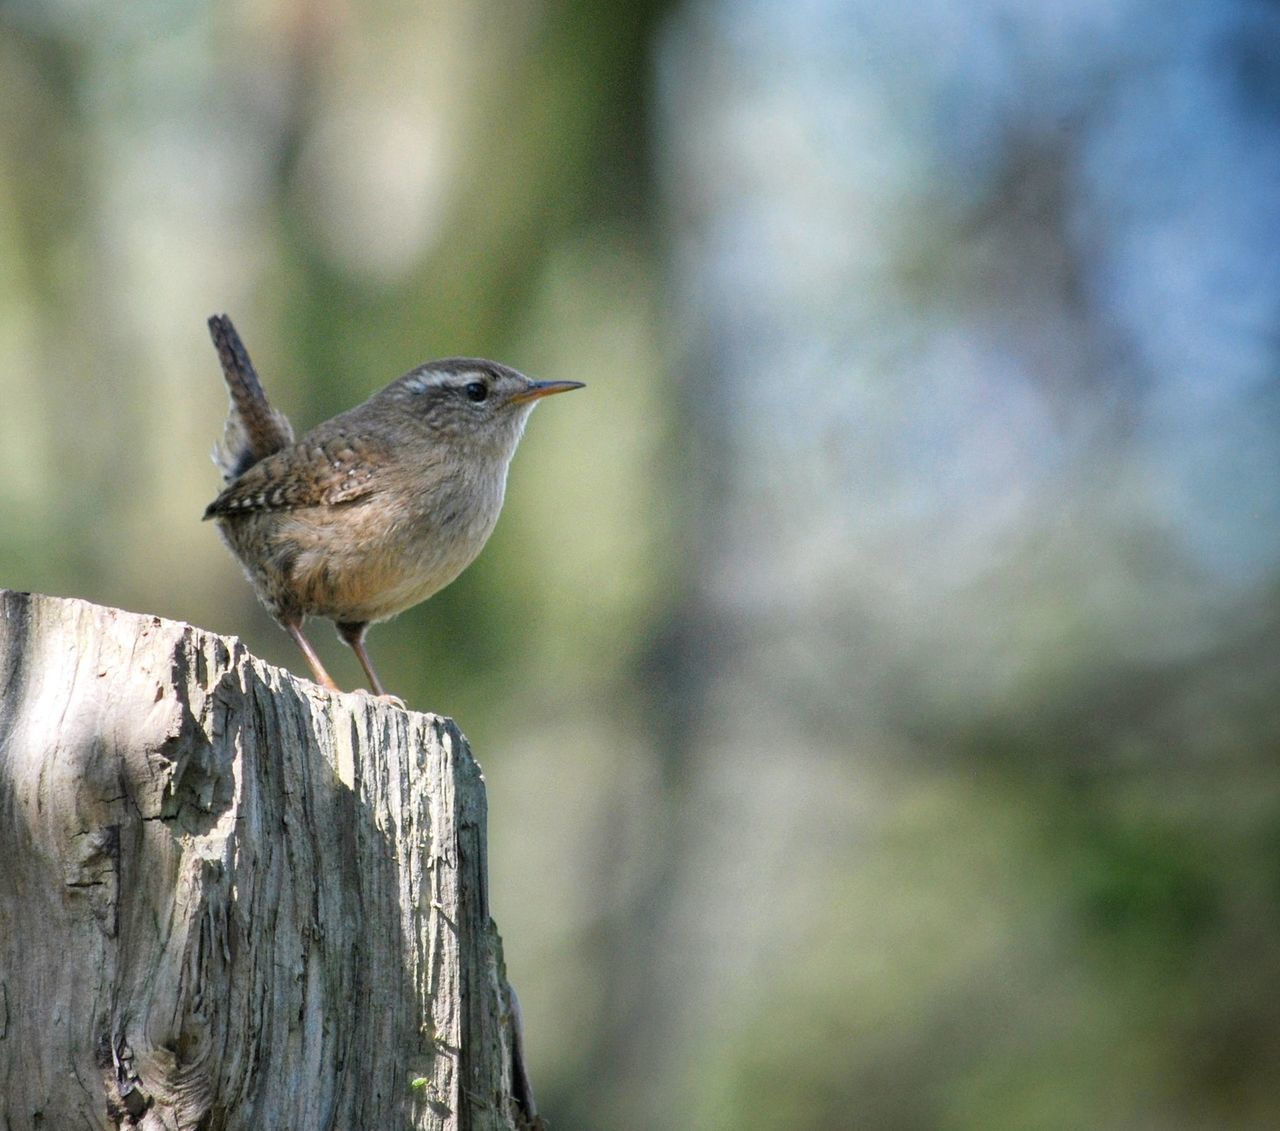 Bird Nature Outdoors Perching Songbird  Tiny Bird Wildlife Wren